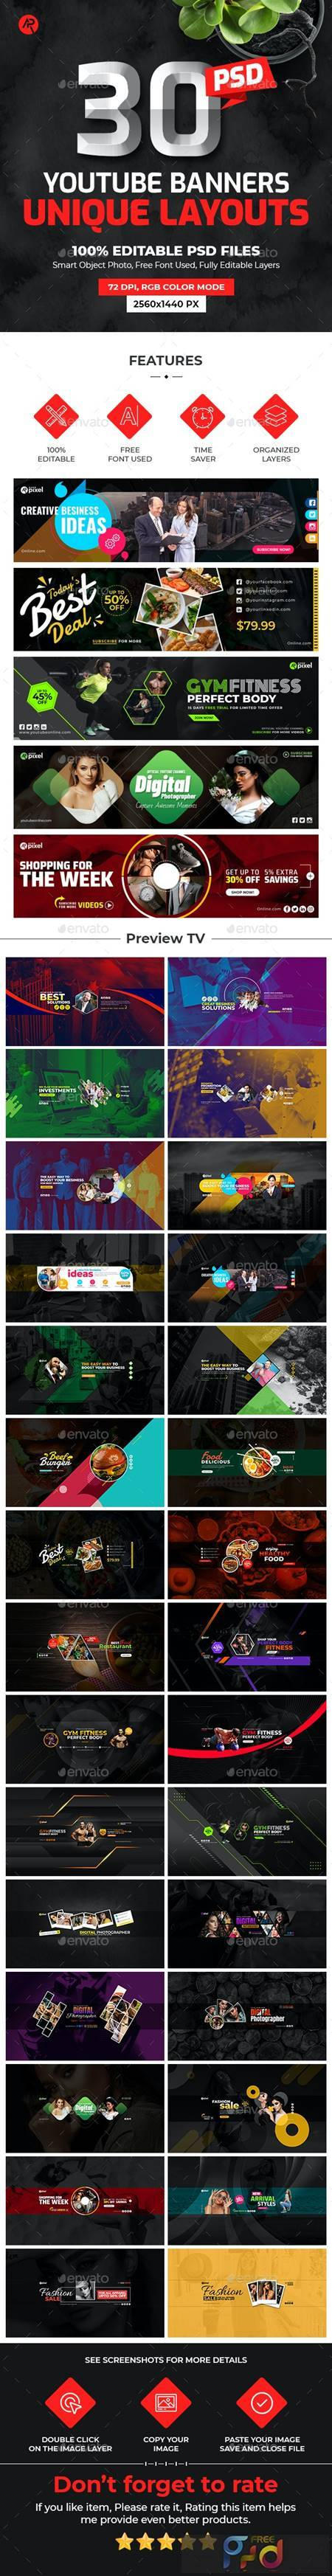 30-Youtube Multipurpose Cover Banners 26152314 1